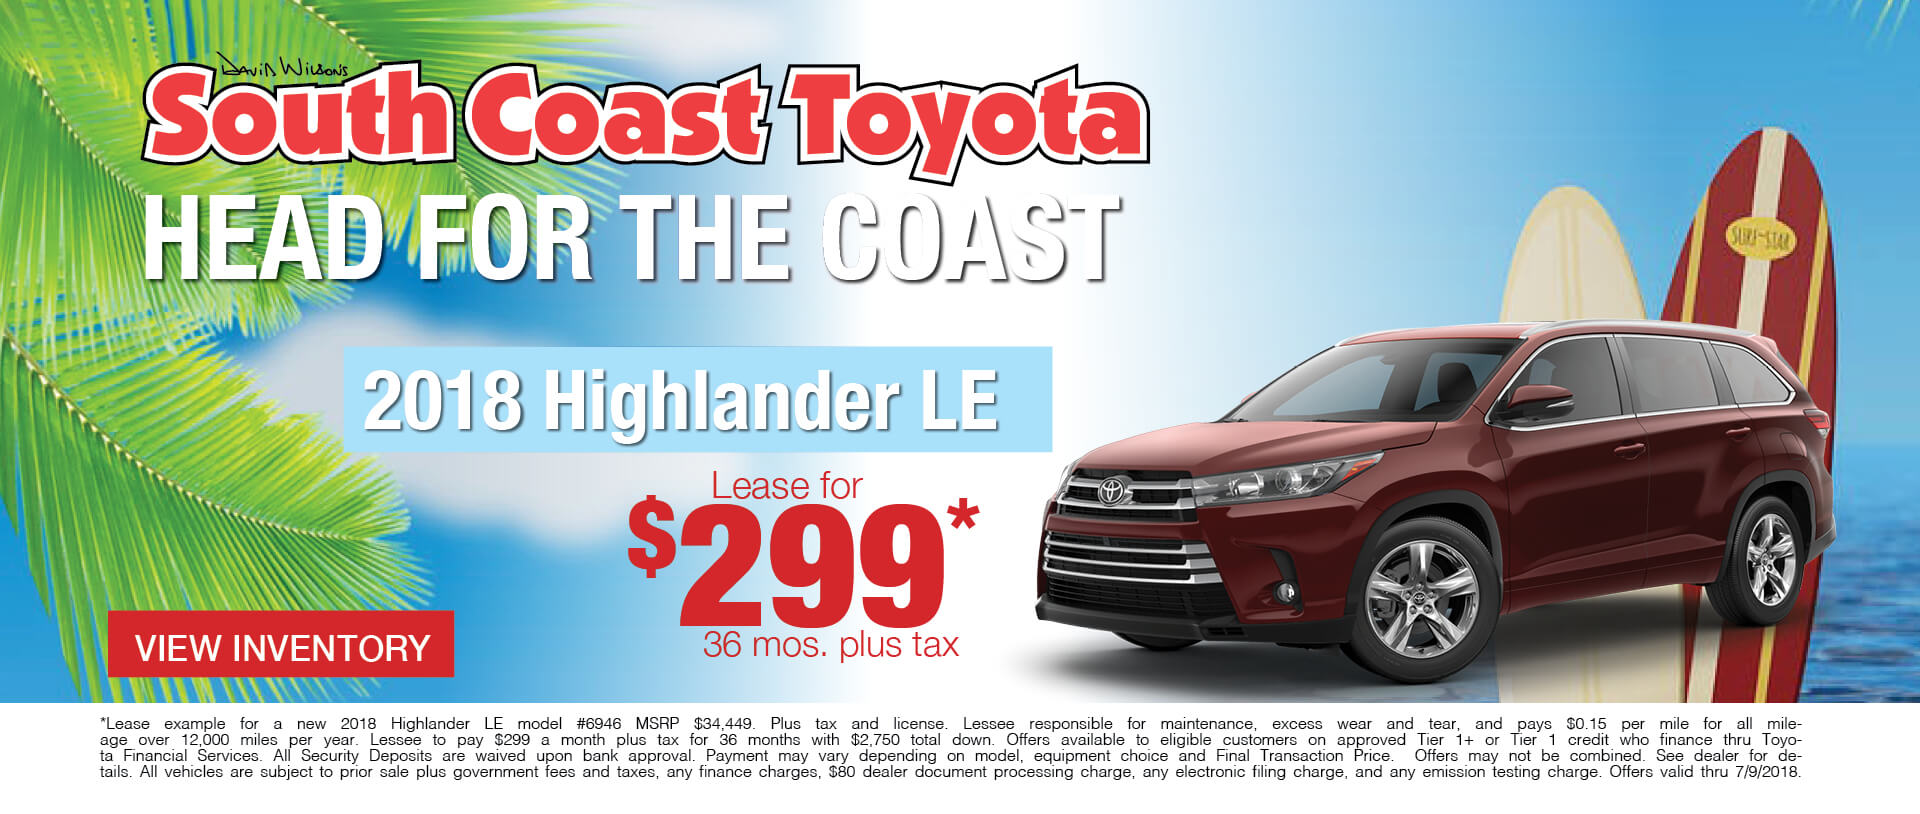 Memorial Day Toyota Highlander $299 Lease